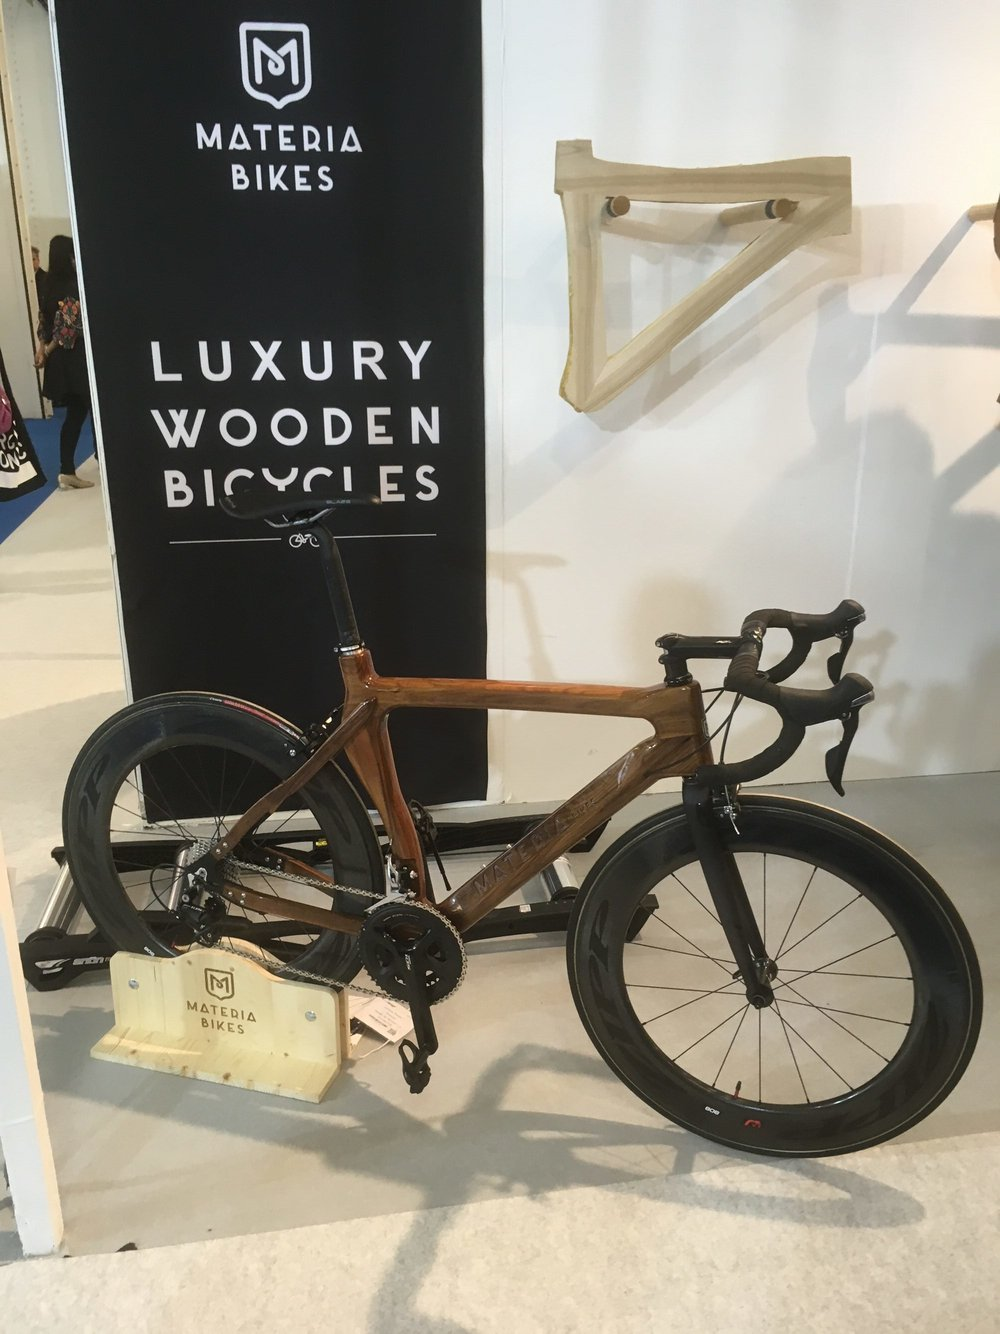 Who wouldn't like to ride a wooden bike? The incredibly clever craftsmen @materiabikes have done just that with their beautiful pedal machines.